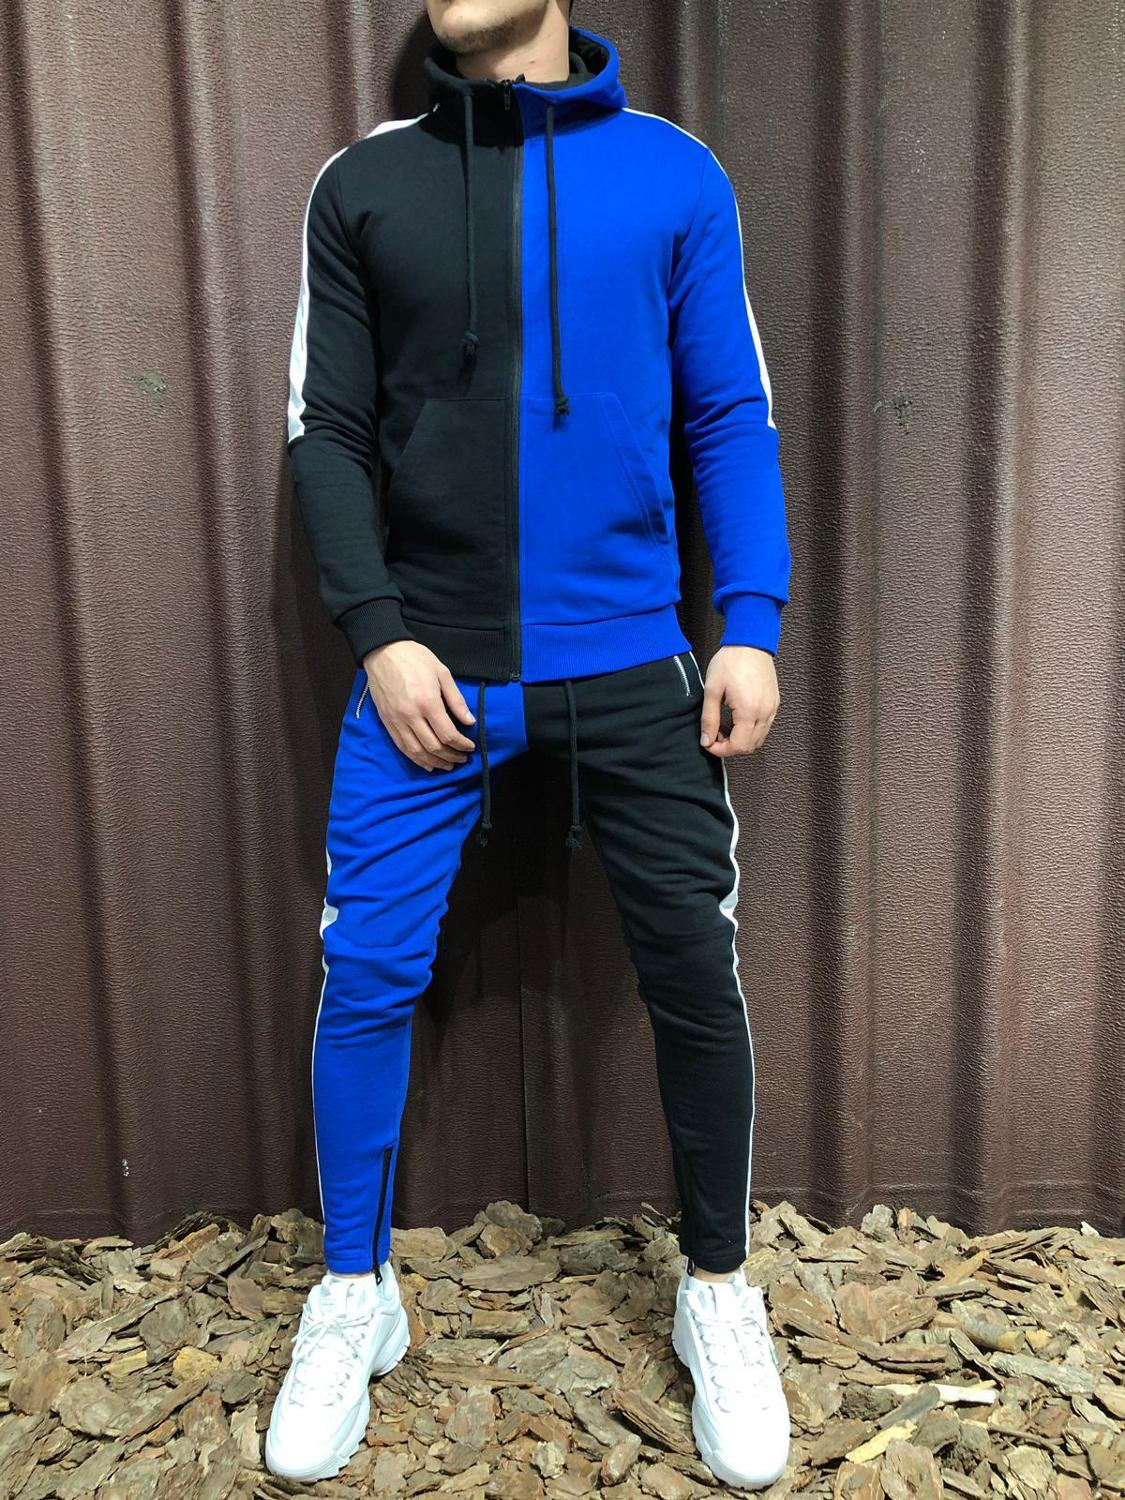 Brand New Men Sets Fashion Autumn Thin Patchwork Jacket Sporting Suit Hoodies+Sweatpants 2 Pieces Sets Slim Tracksuit clothing